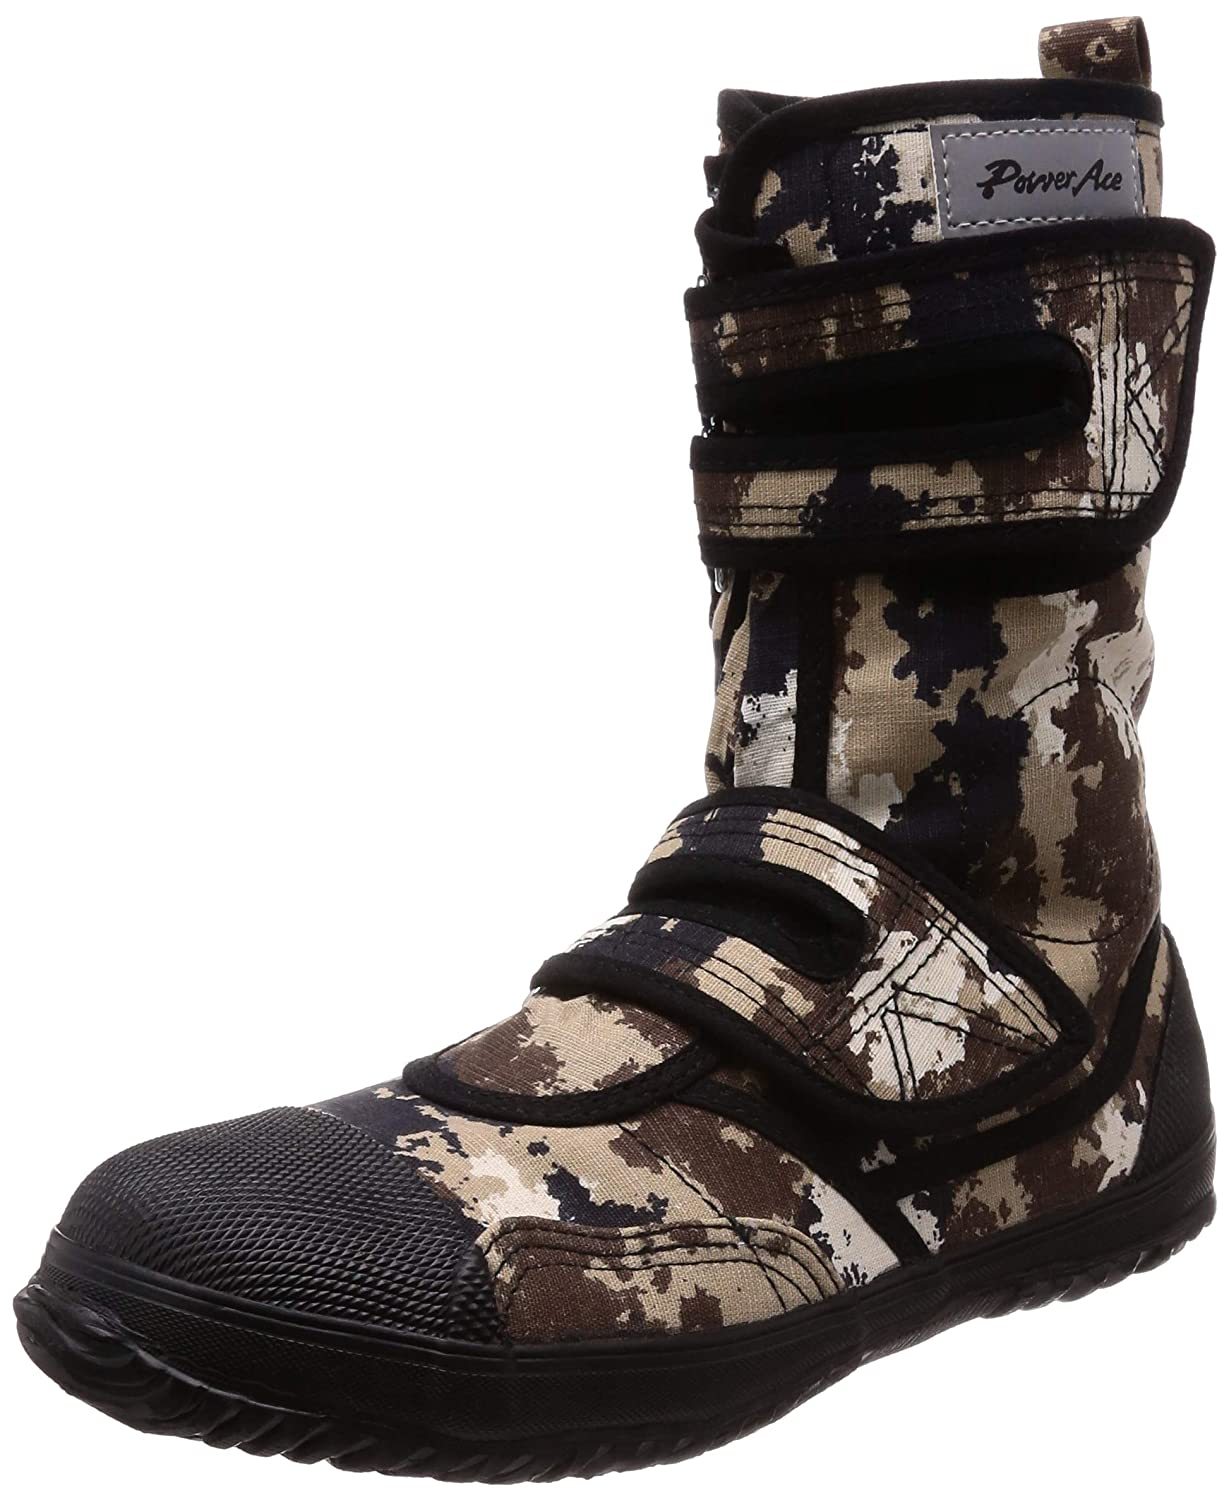 aaa6235685a Japanese Tabi Power Ace High Guard Steel Toe Camouflage Desert Tactical  Boots